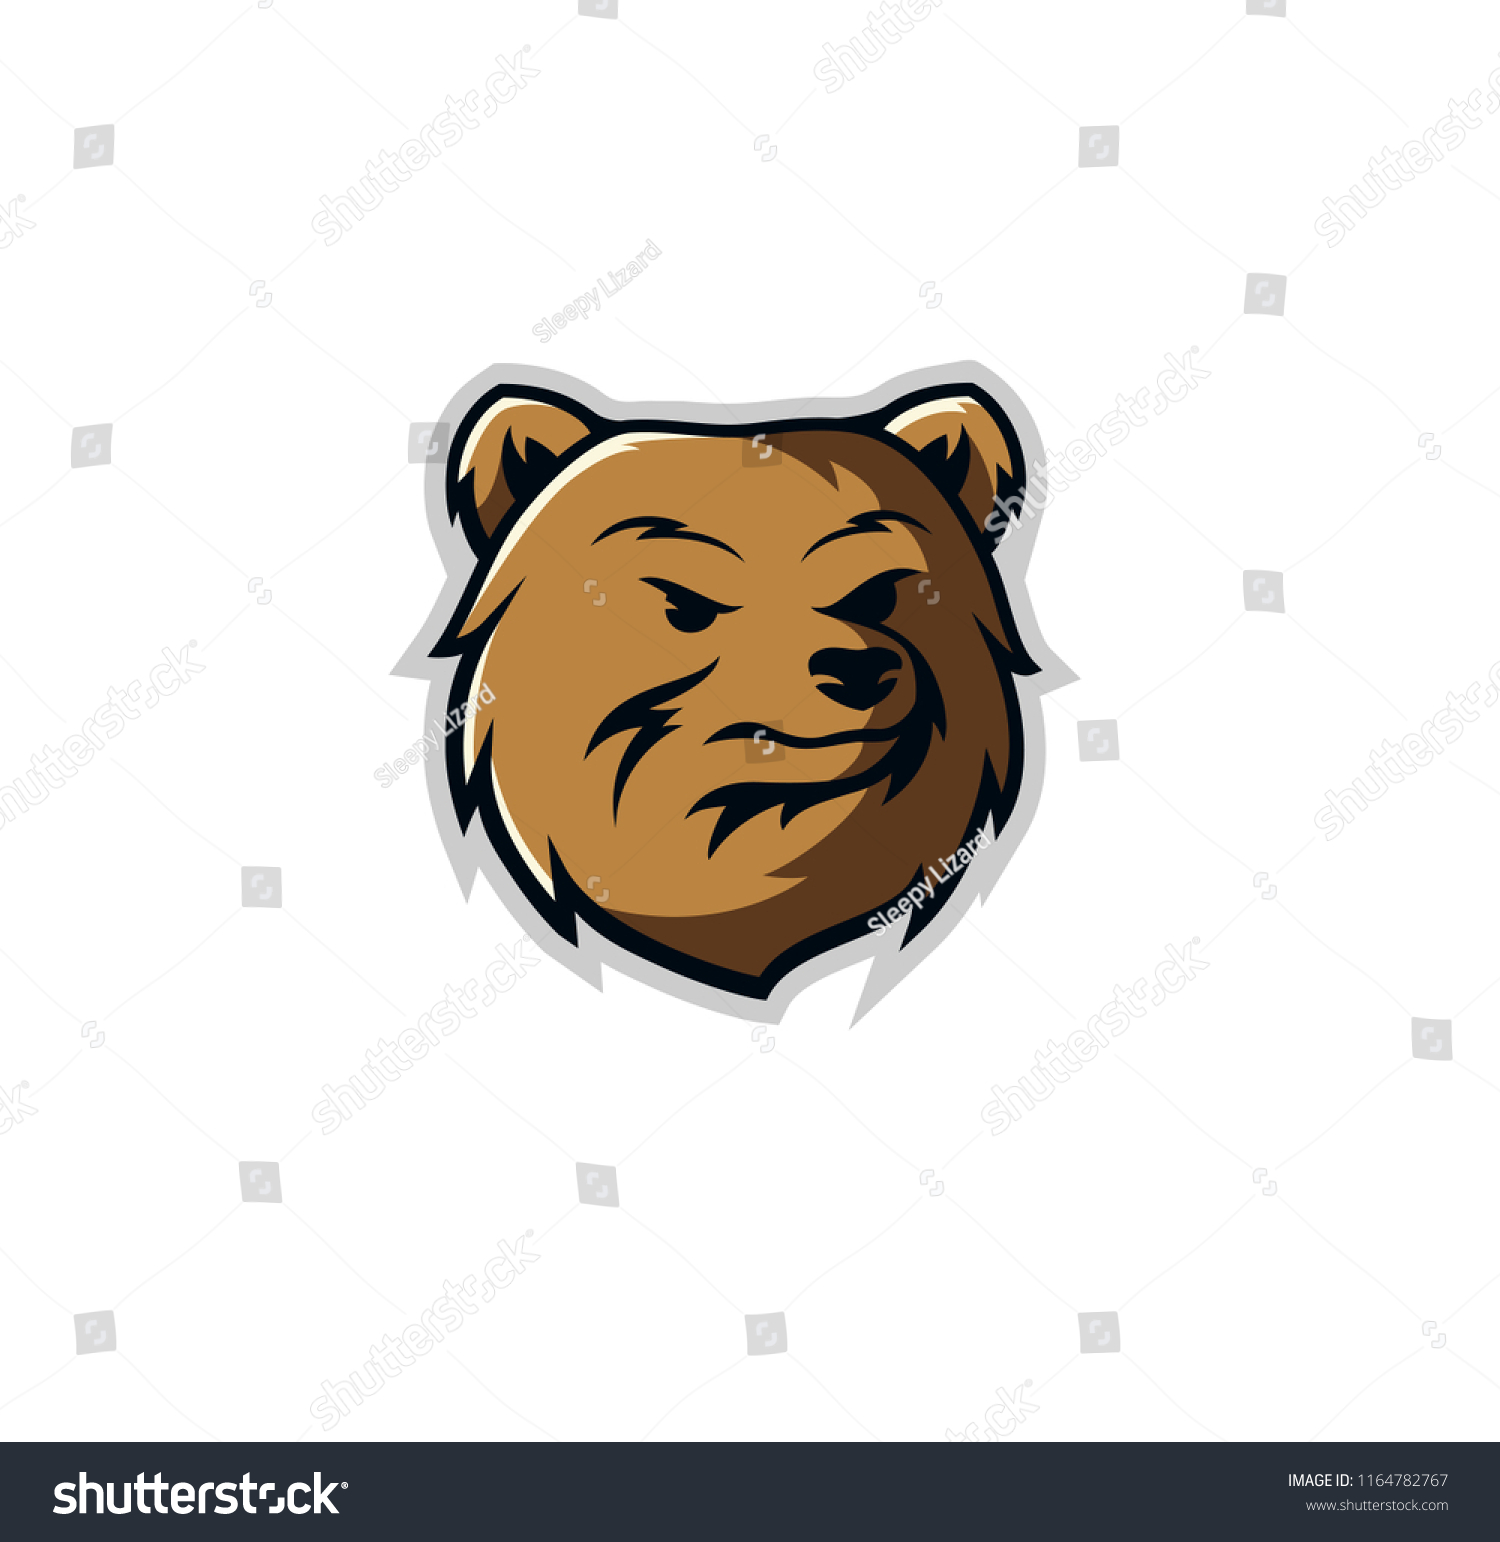 hight resolution of bear mascot logo design vector